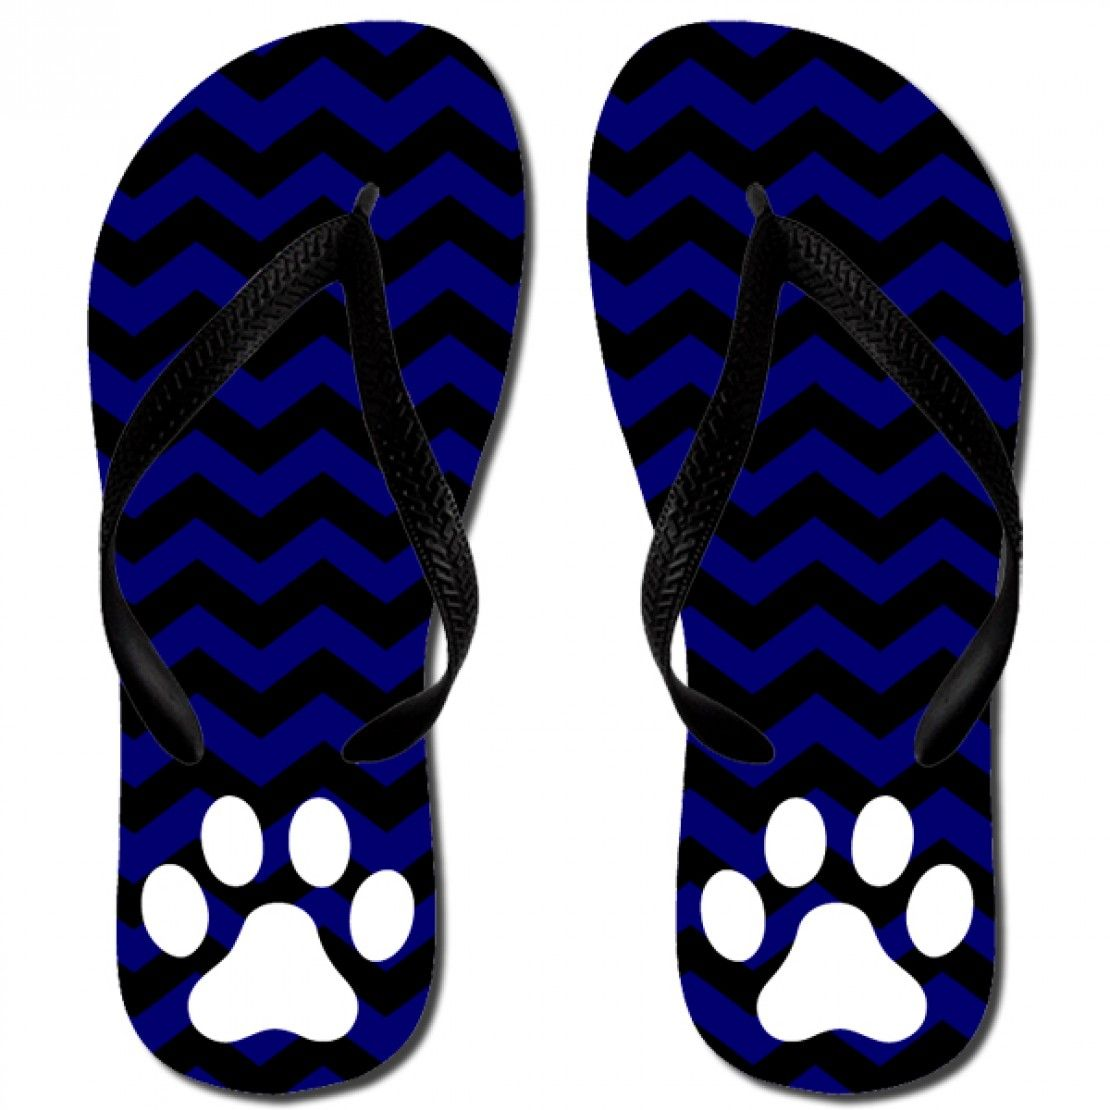 Katydid Blue Chevron Paw Women's Flip Flop Designed by Katydid flip flops  are unisex sizing.